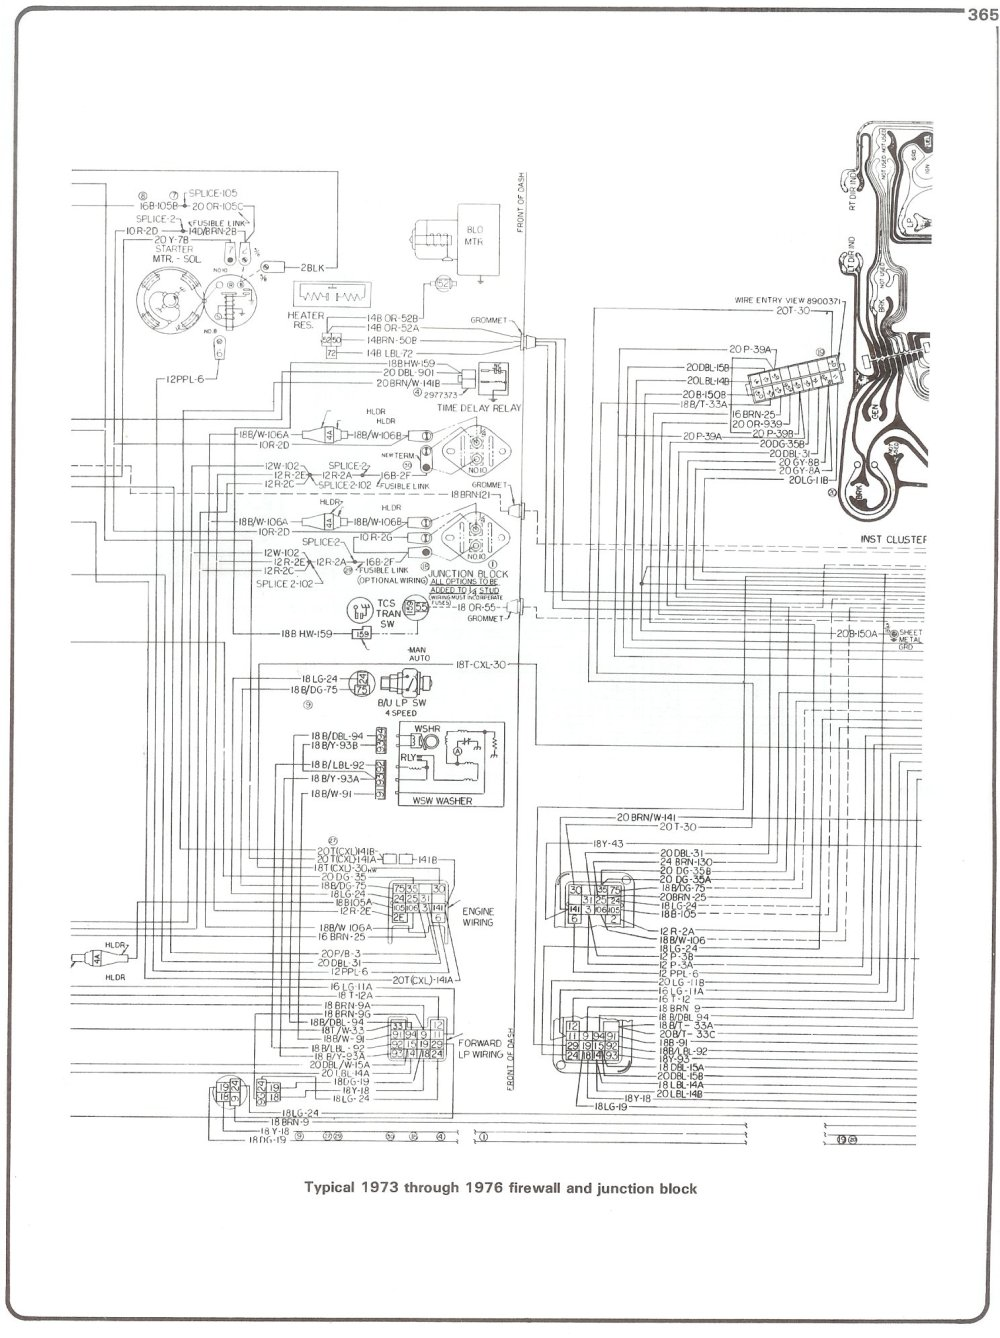 medium resolution of complete 73 87 wiring diagrams gmc wiring diagram 73 76 firewall junction